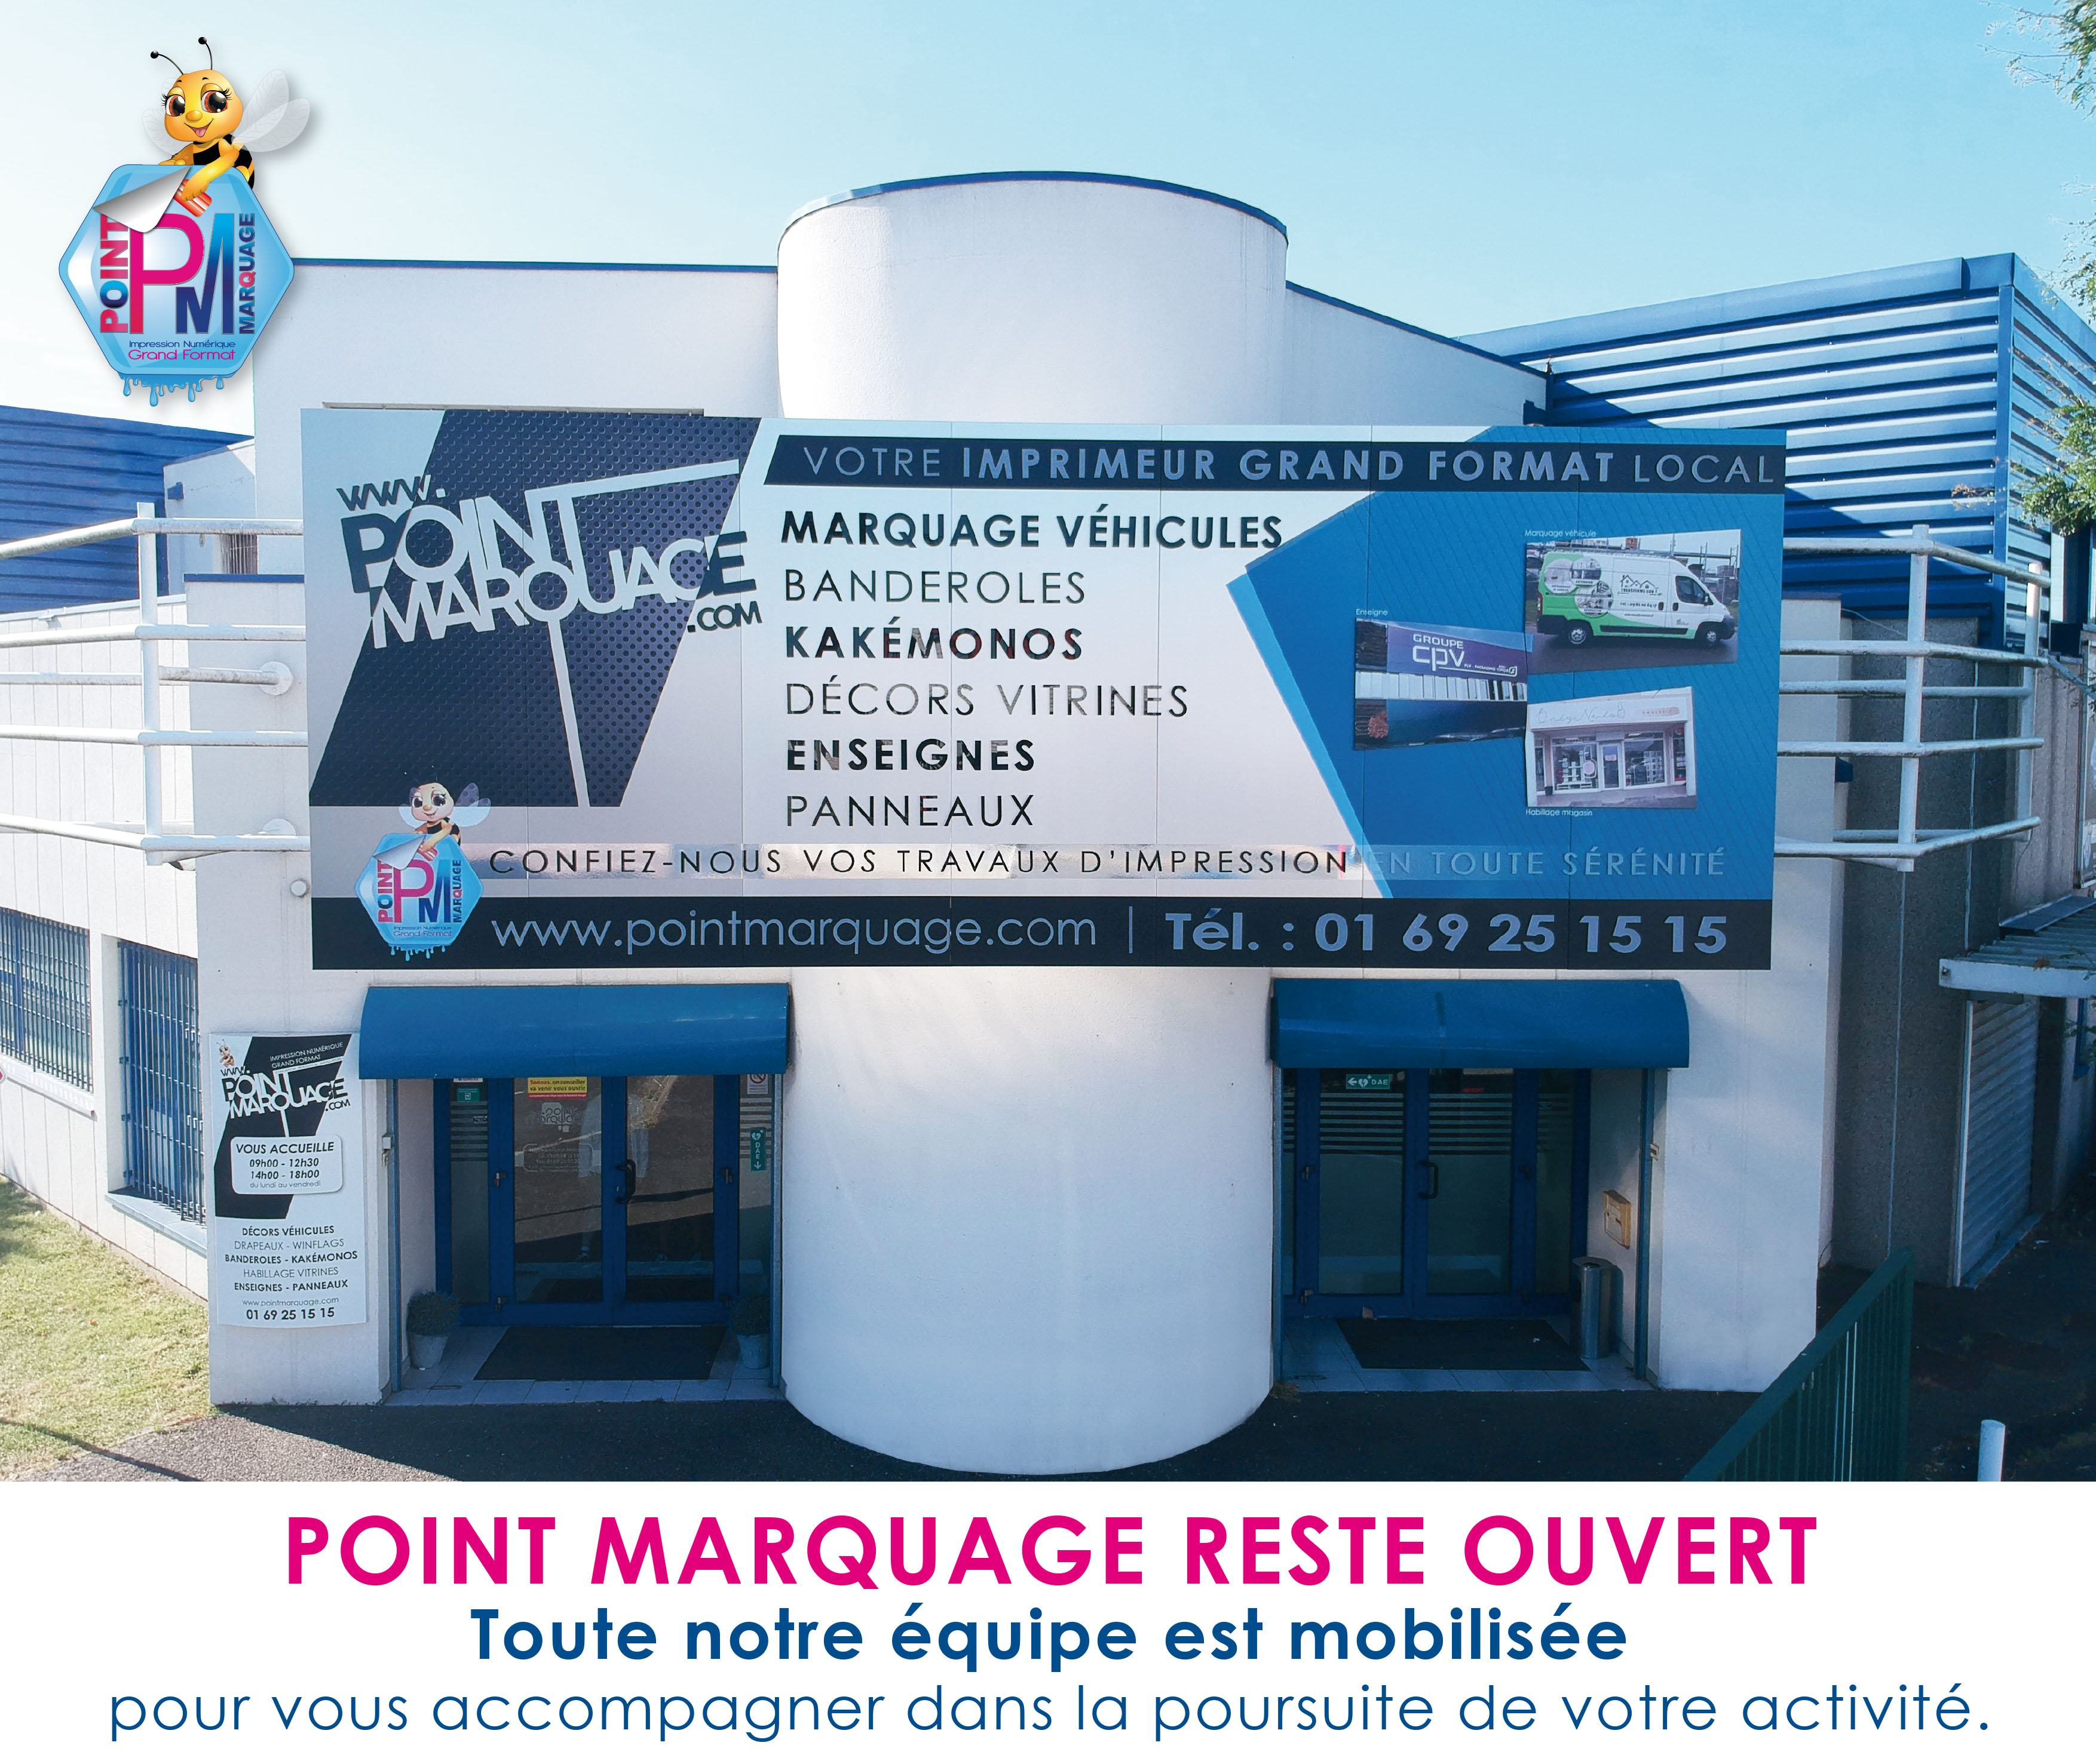 POINT MARQUAGE RESTE OUVERT